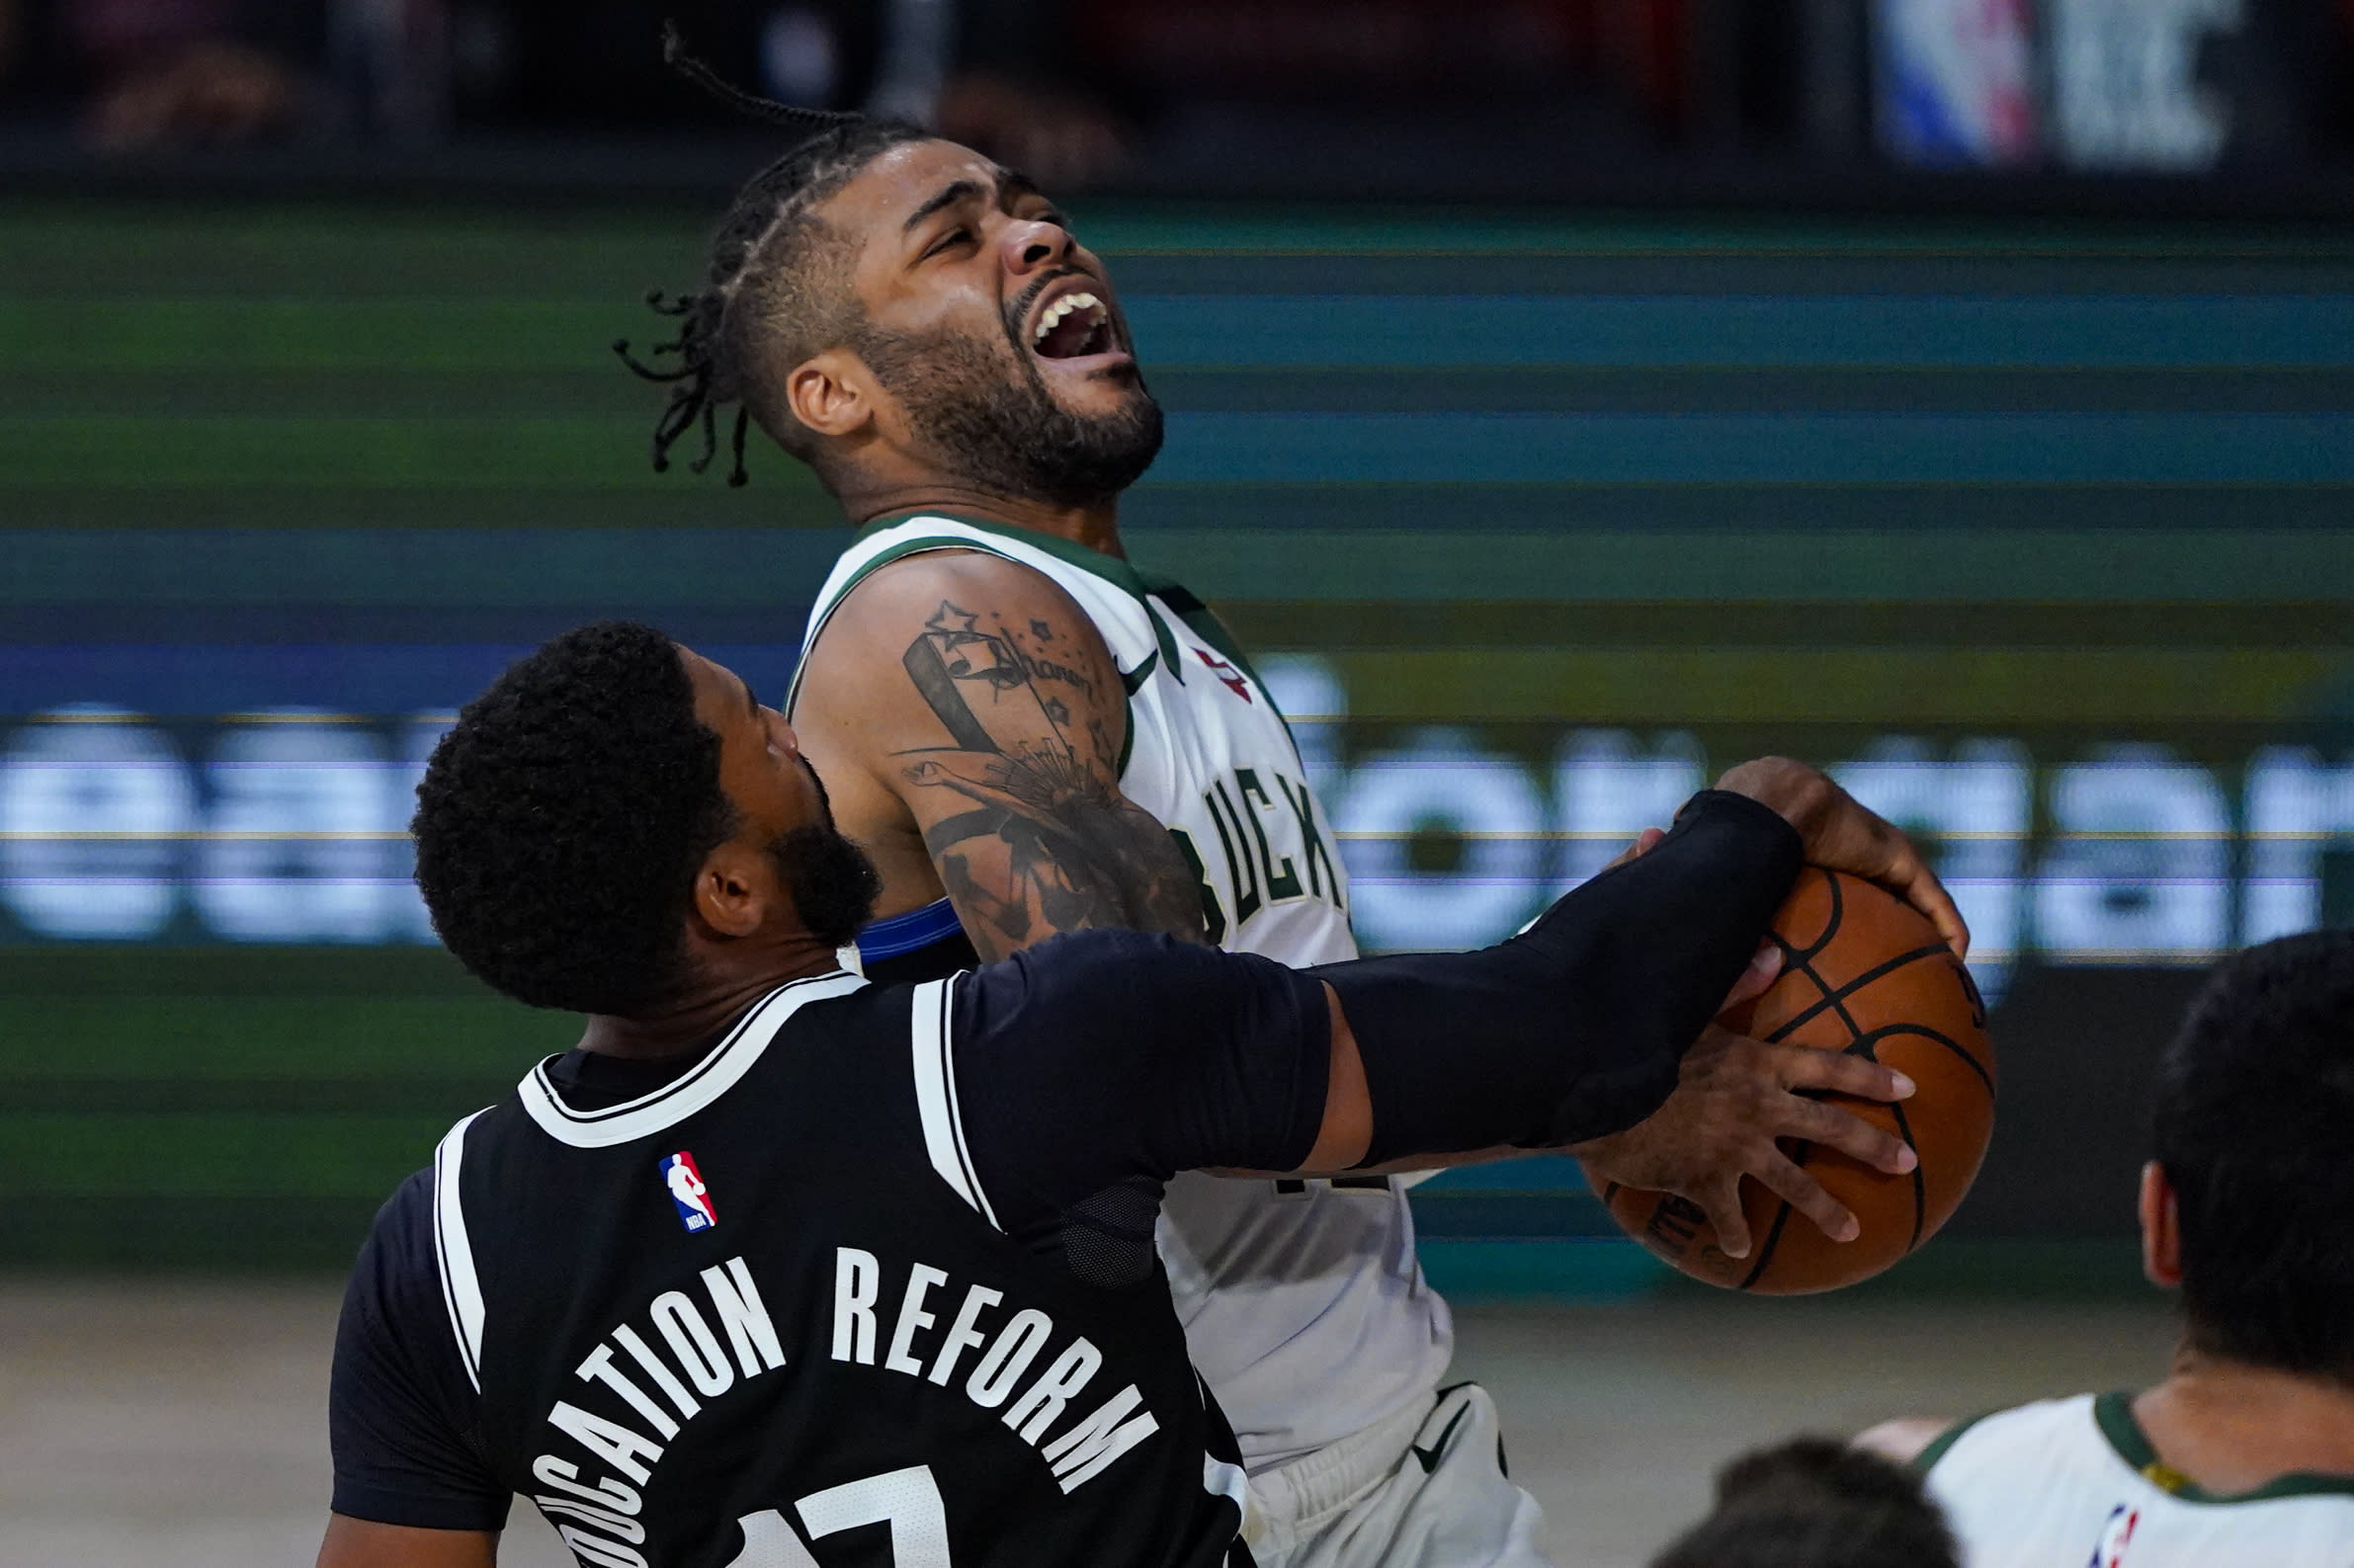 Milwaukee Bucks guard Frank Mason III (15) is fouled as he shoots by Brooklyn Nets guard Garrett Temple (17) during the second half of an NBA basketball game Tuesday, Aug. 4, 2020 in Lake Buena Vista, Fla. (AP Photo/Ashley Landis)